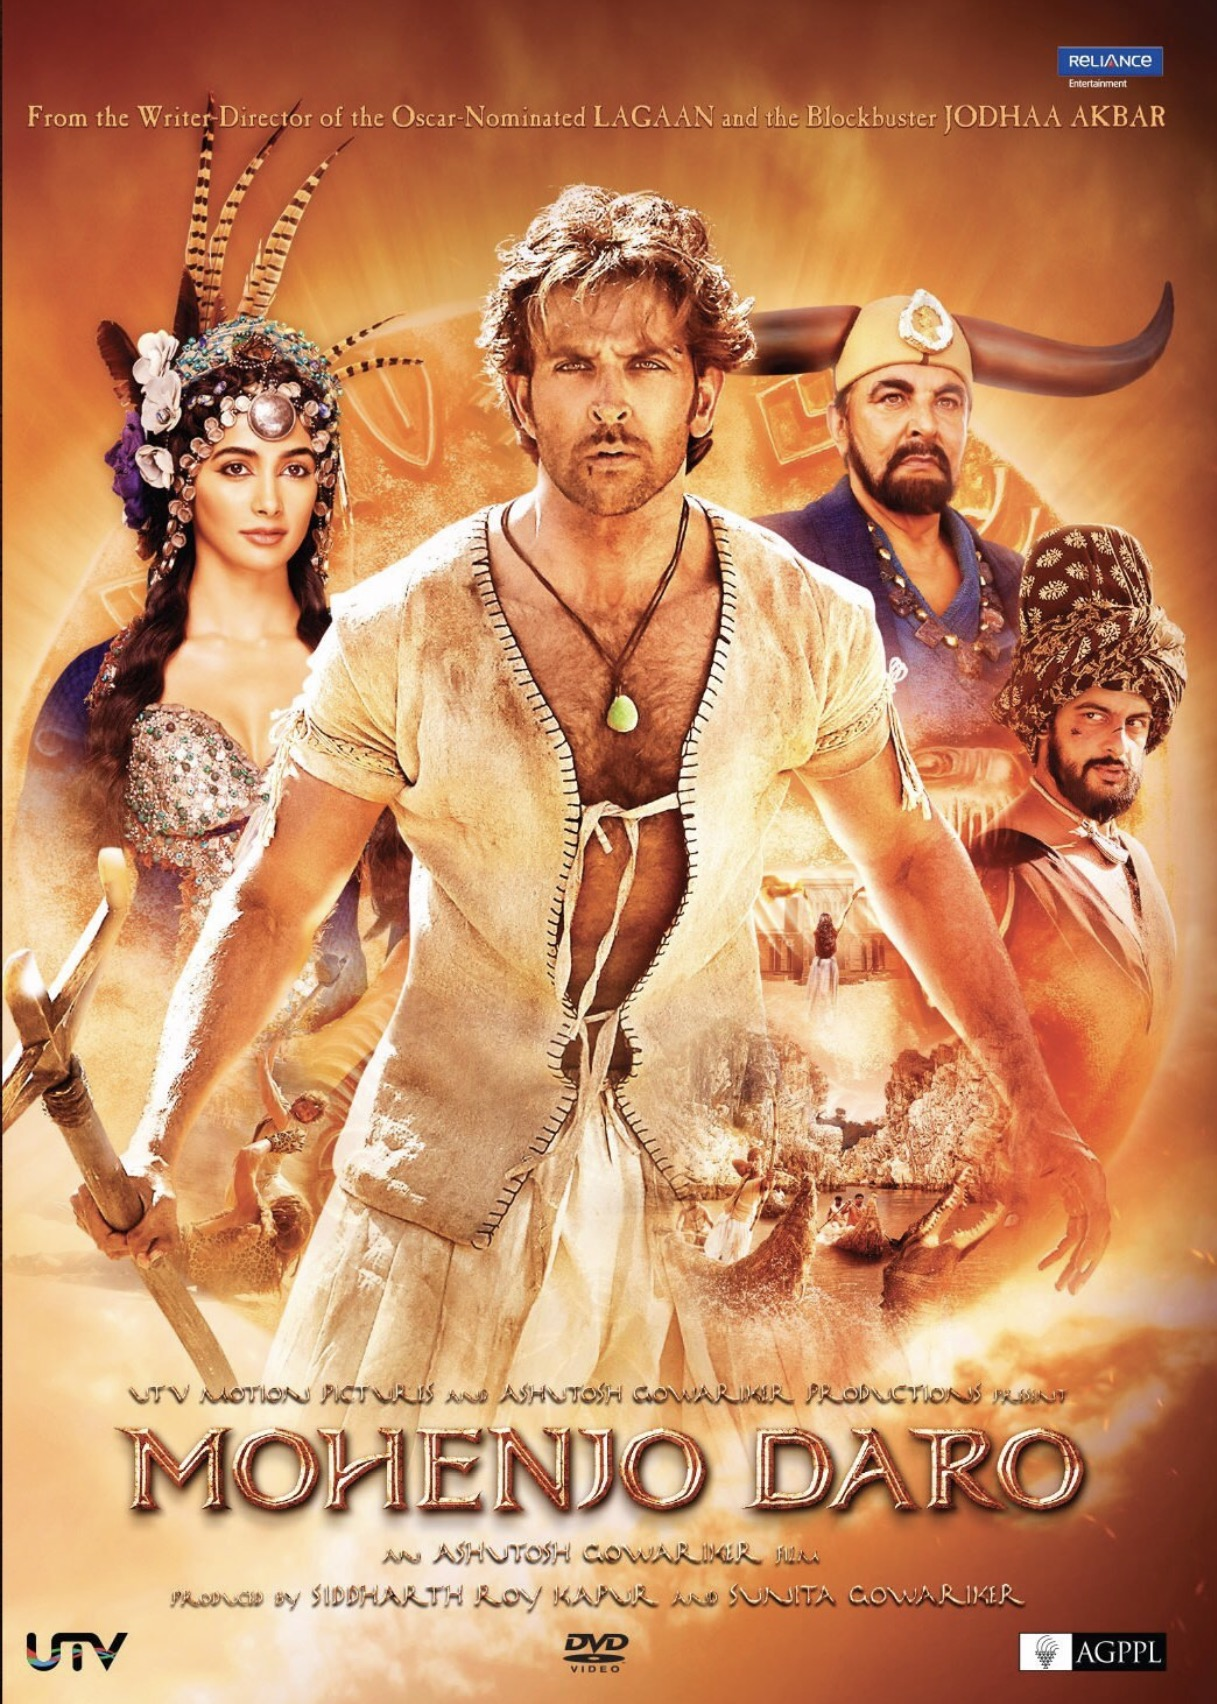 Mohenjo Daro 2016 Hindi Movie HDRip x264 AAC 300MB Download